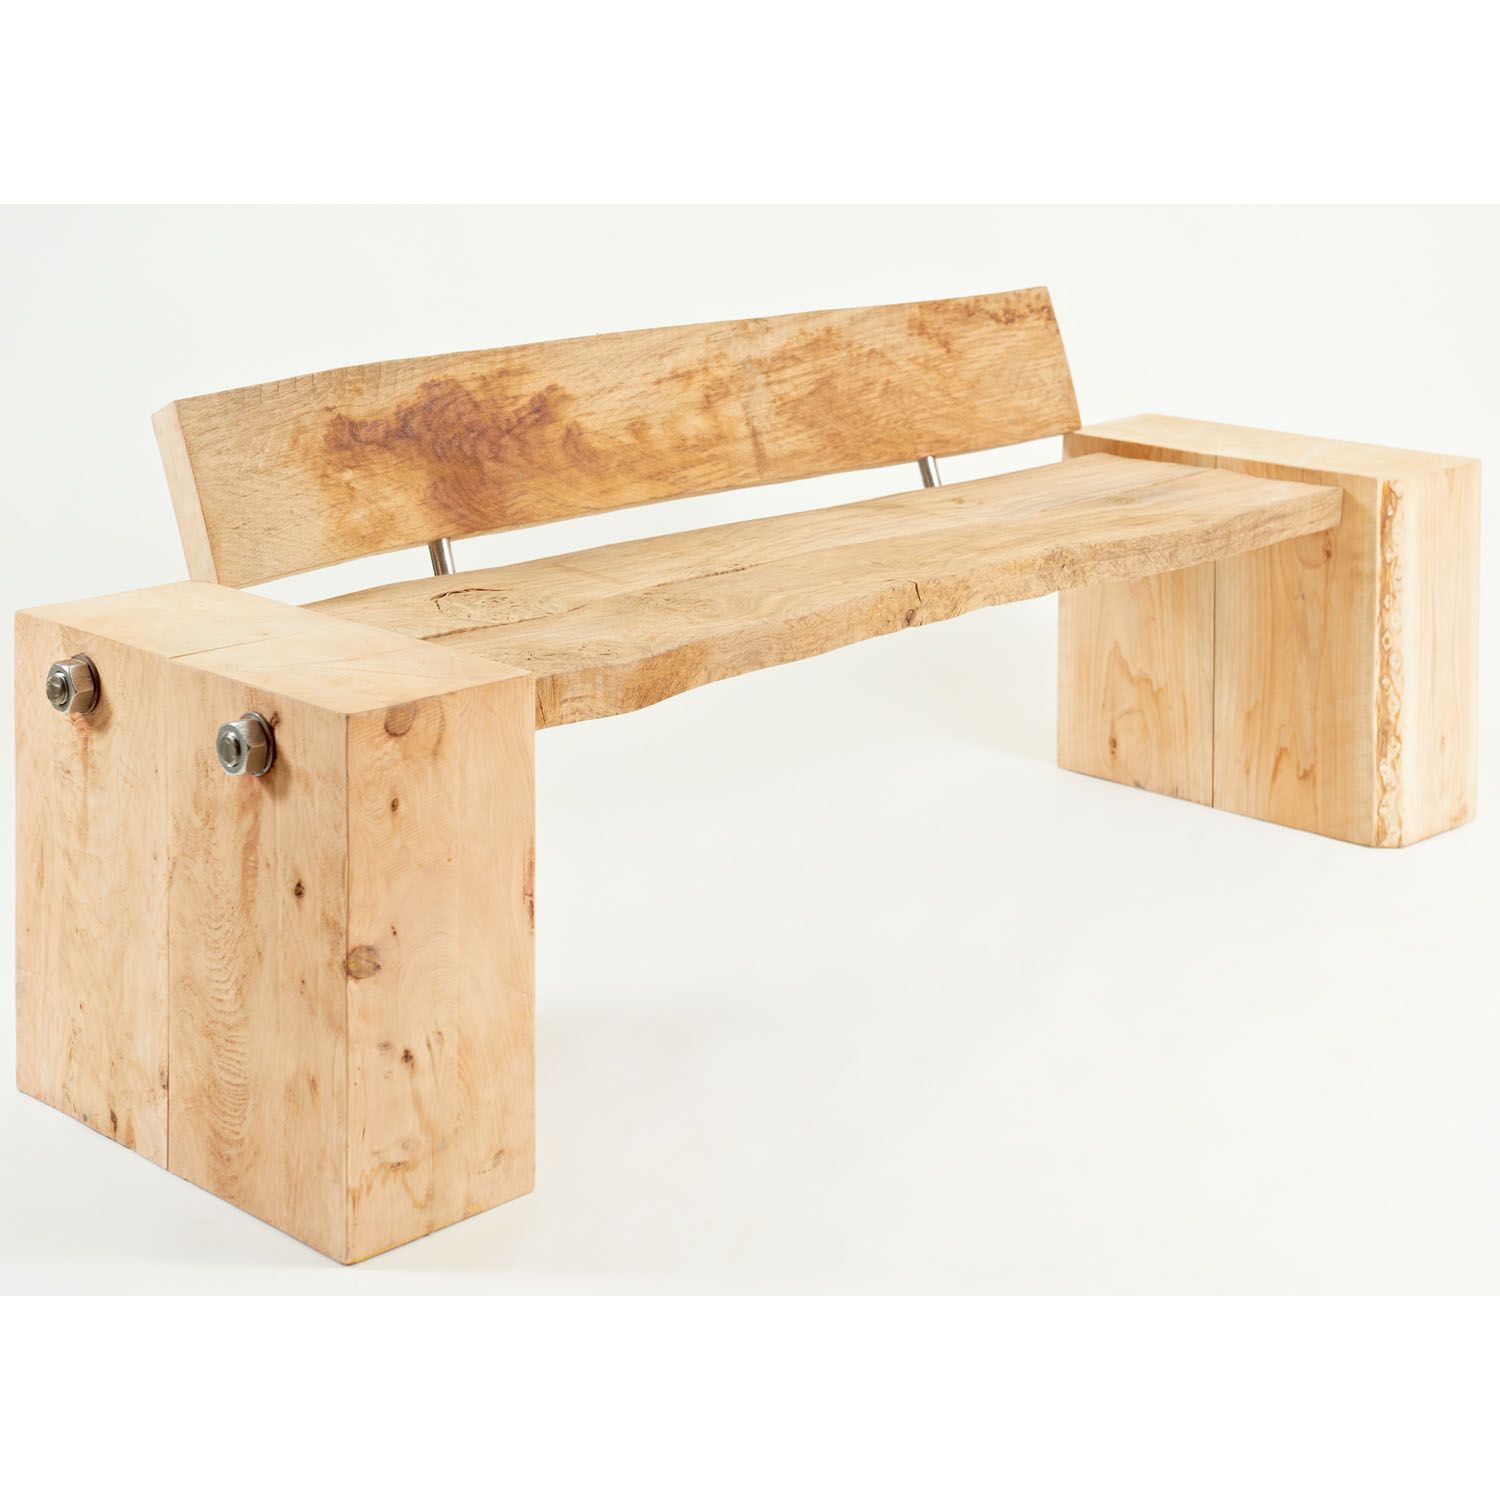 Fat Leaf Century Bench with Back – Next Day Delivery Fat Leaf Century Bench with Back from WorldStores: Everything For The Home